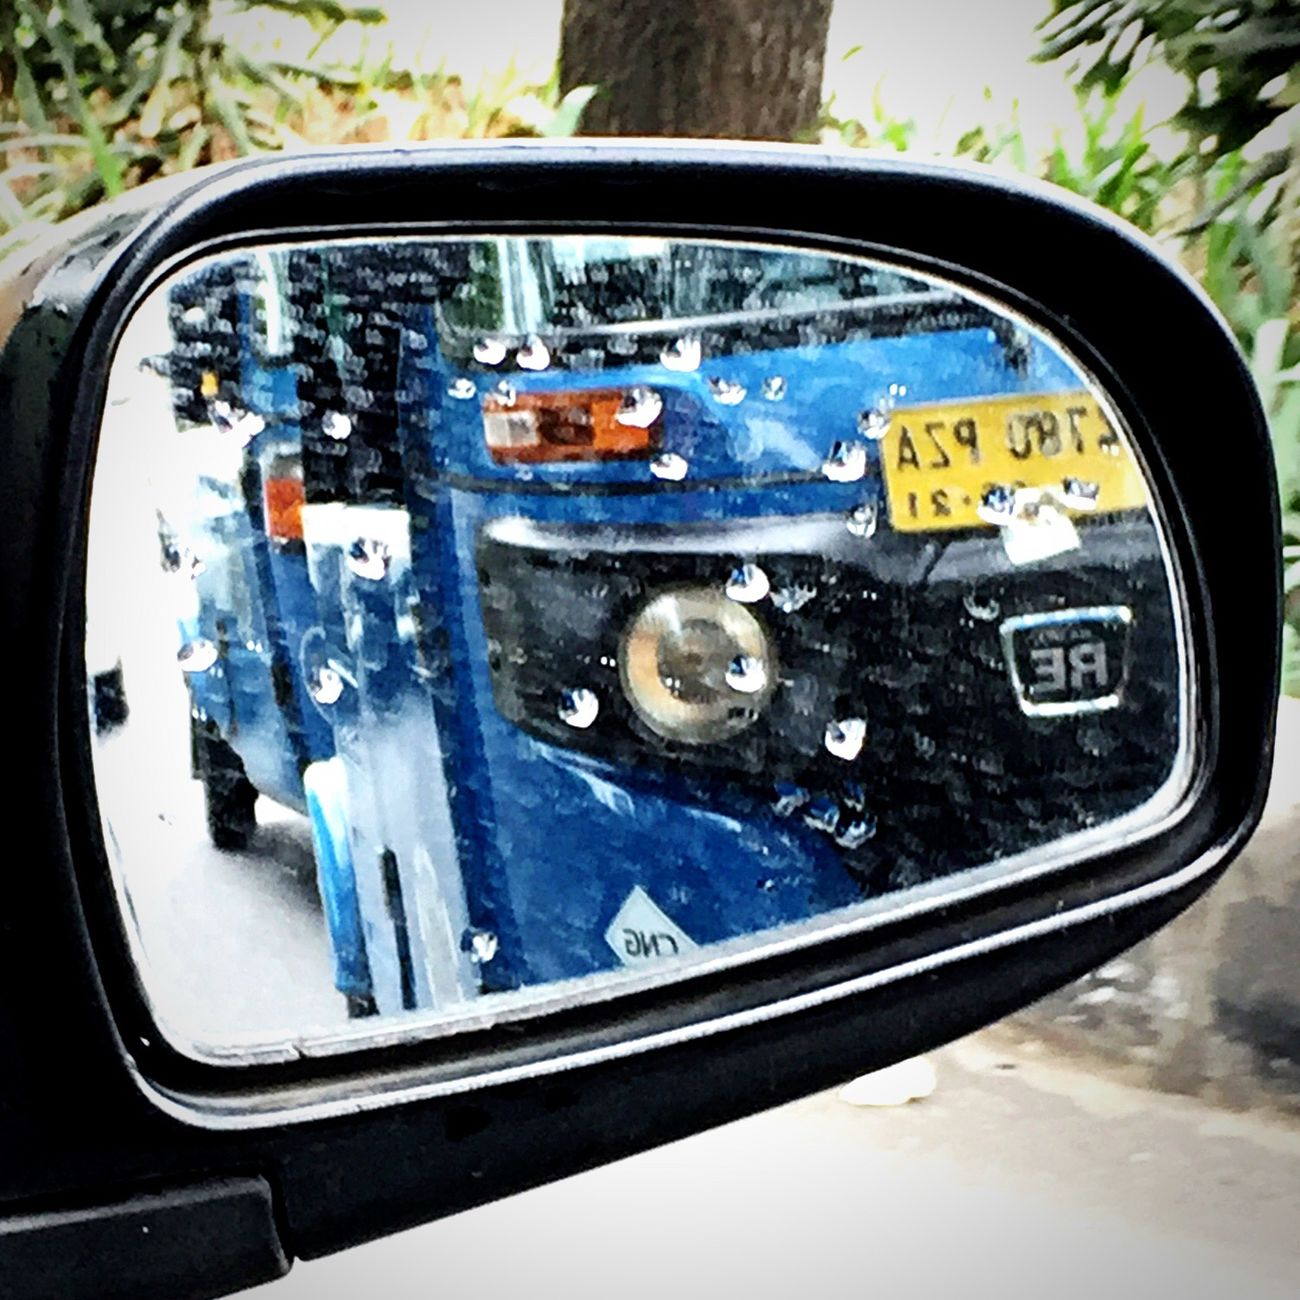 Transportation Land Vehicle Bajaj Vehicle Mirror Outdoors Side-view Mirror Reflection